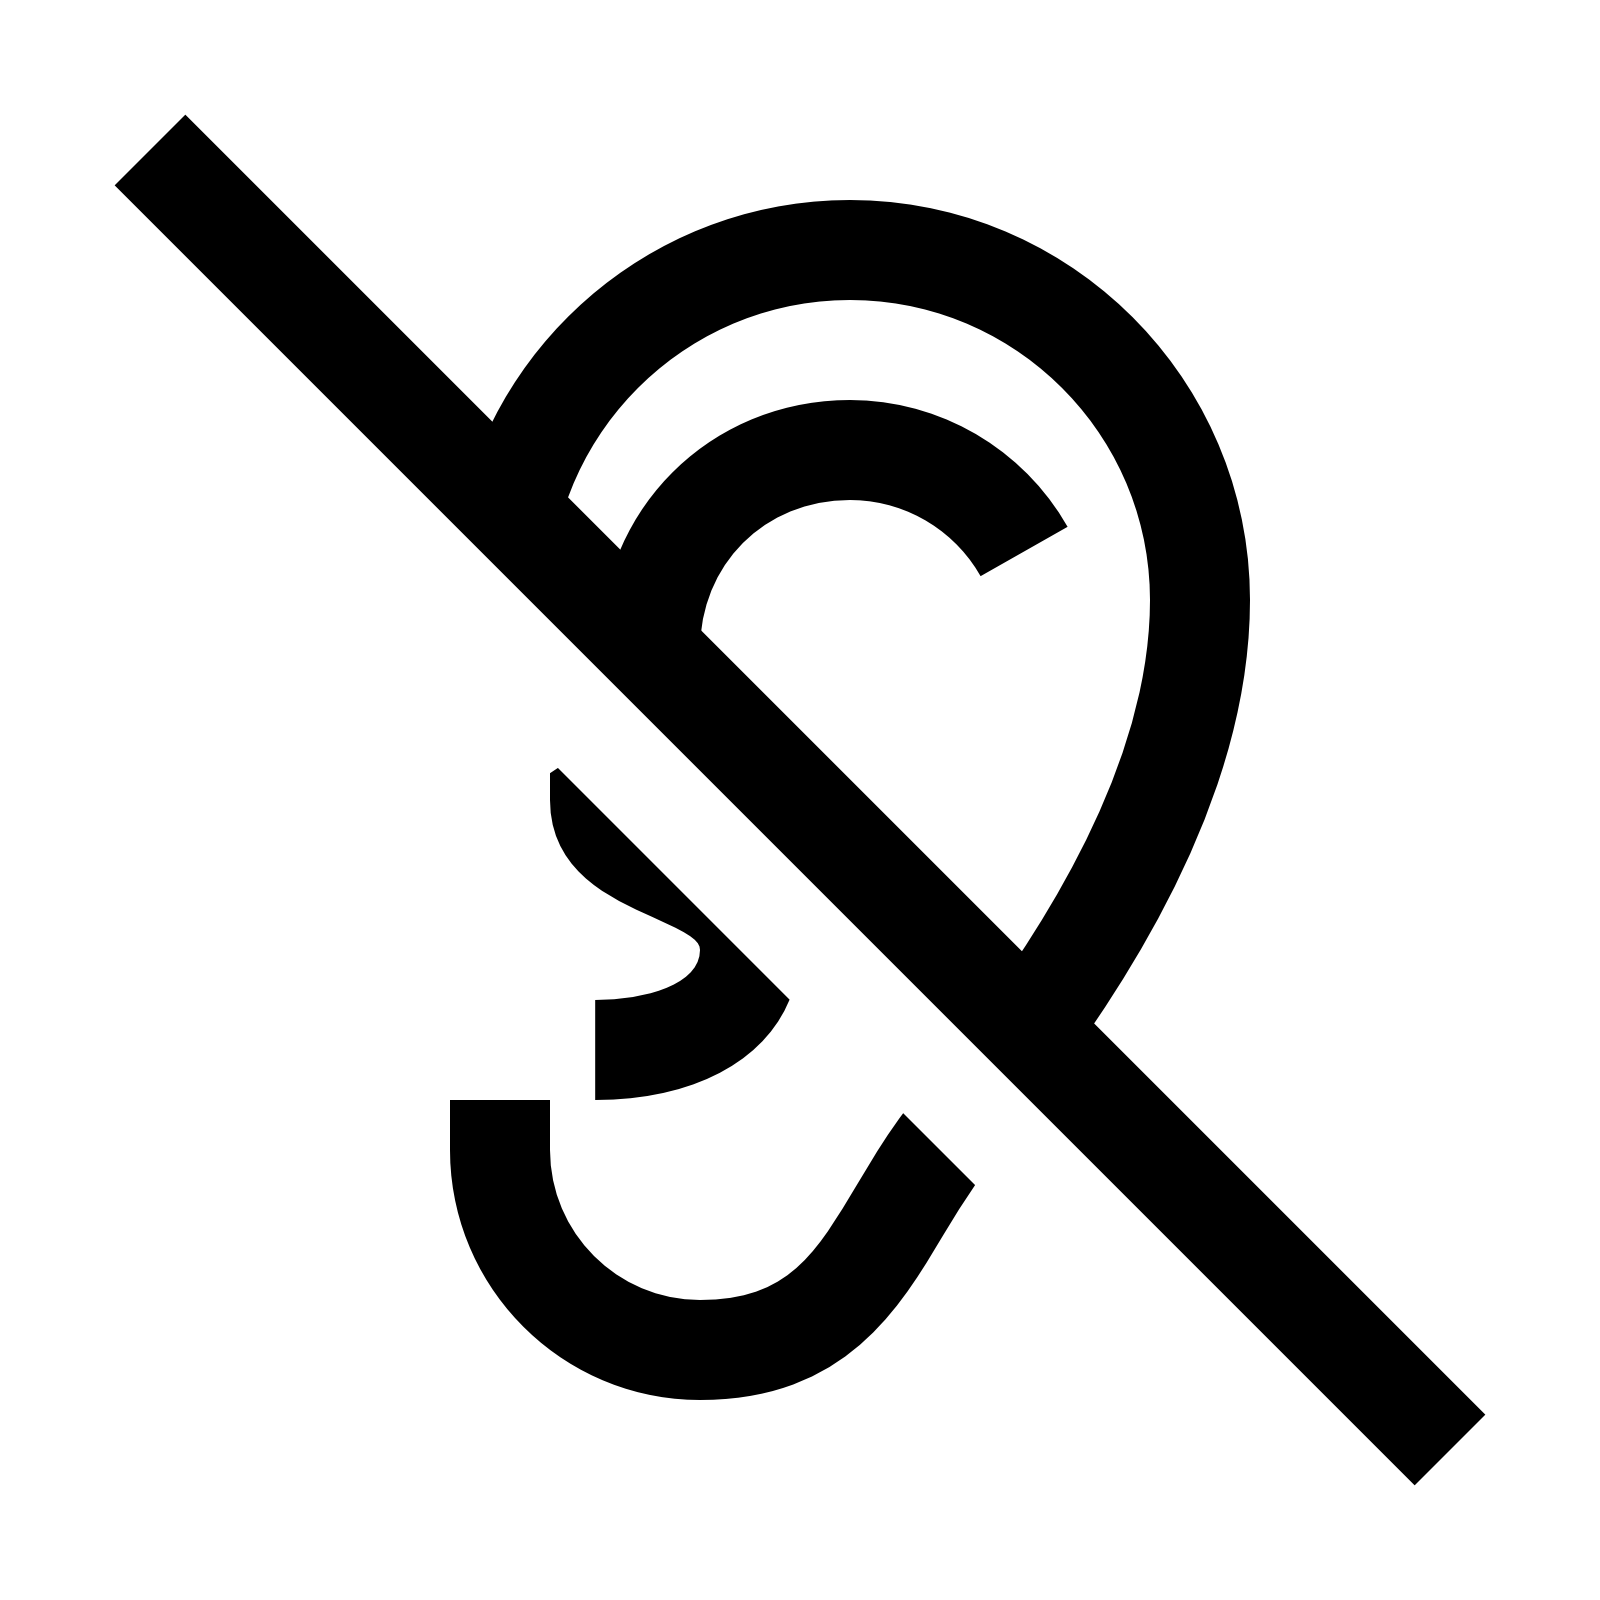 Ears clipart auditory. Computer icons symbol hearing